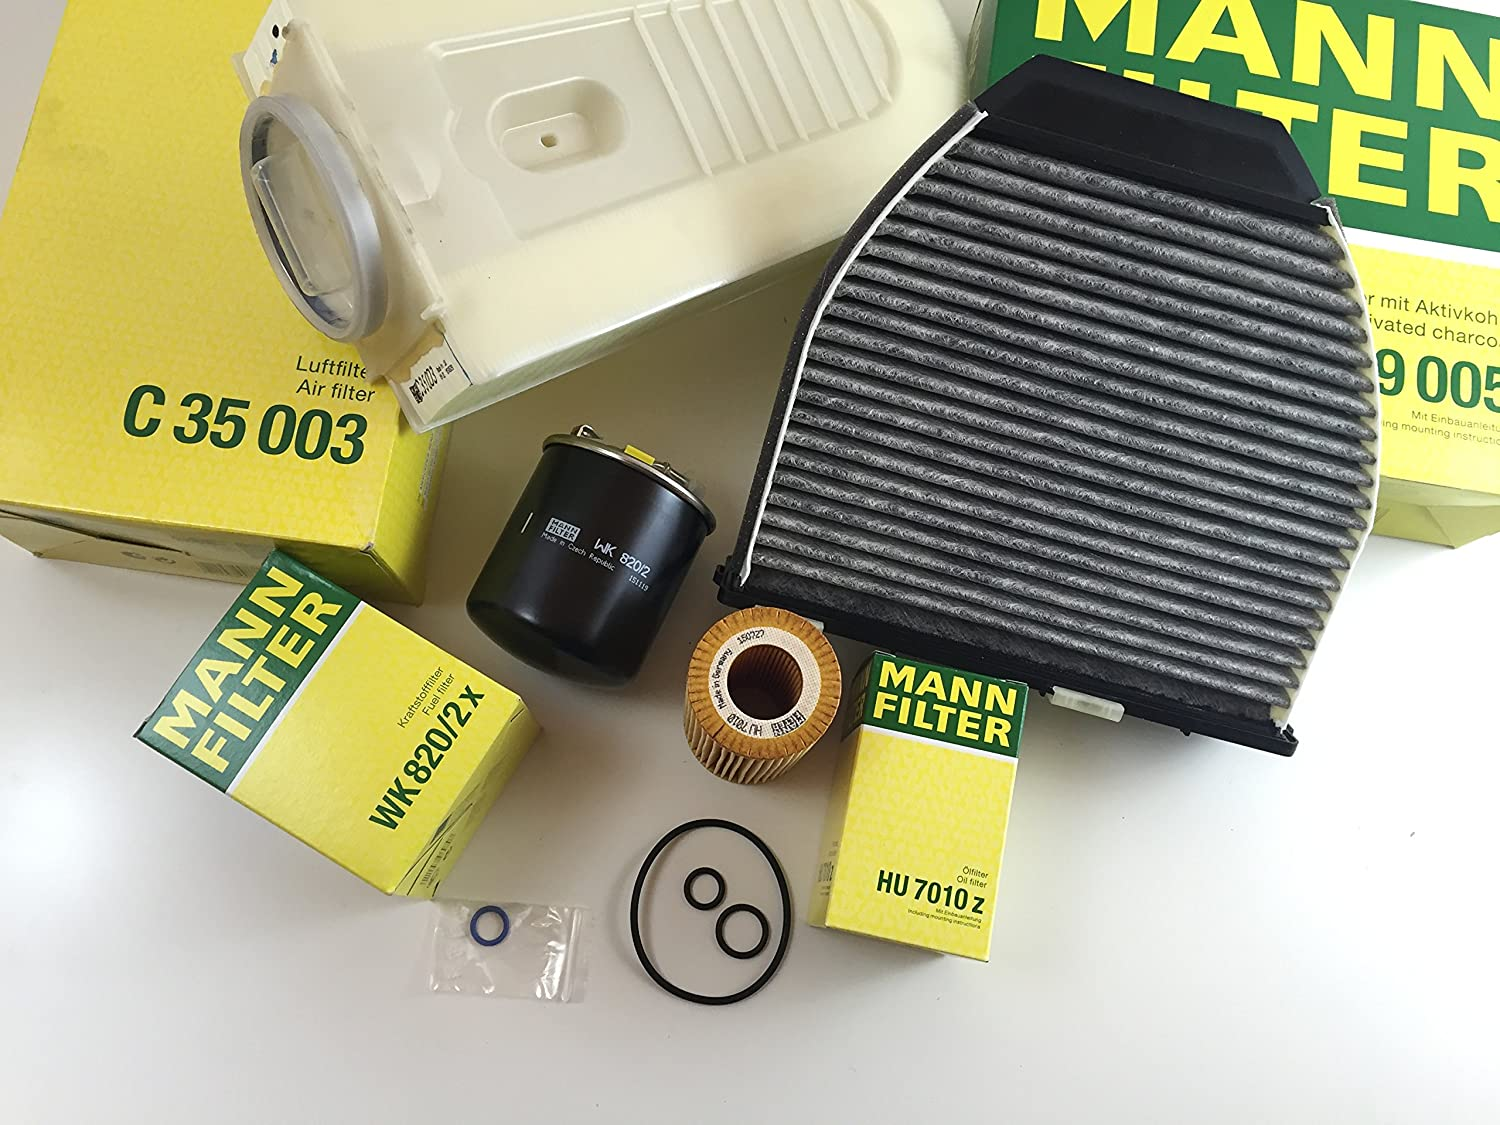 Mann Filter Oil Air Activated Carbon Set Fuel Wk 11030 W212 S212 W204 S203 Cdi Car Motorbike